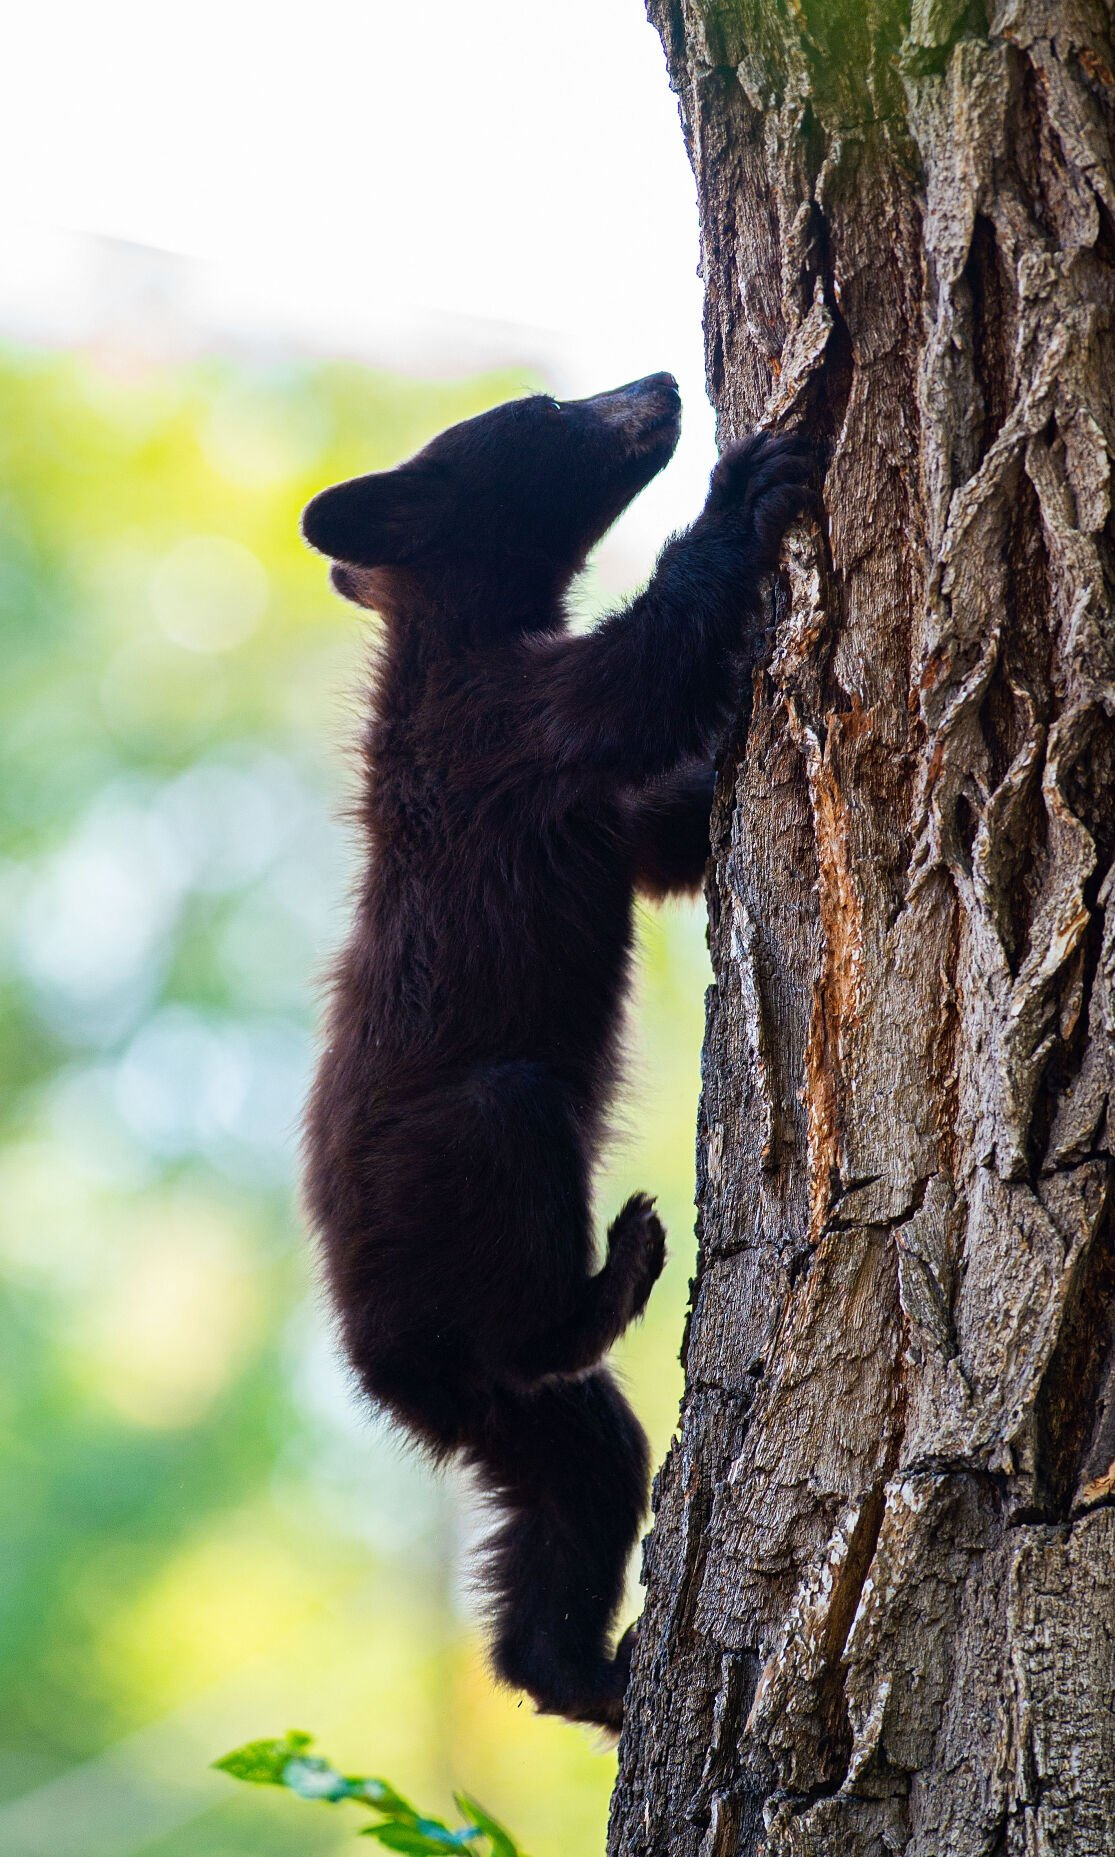 Bears take shelter in tree near downtown Colorado Springs